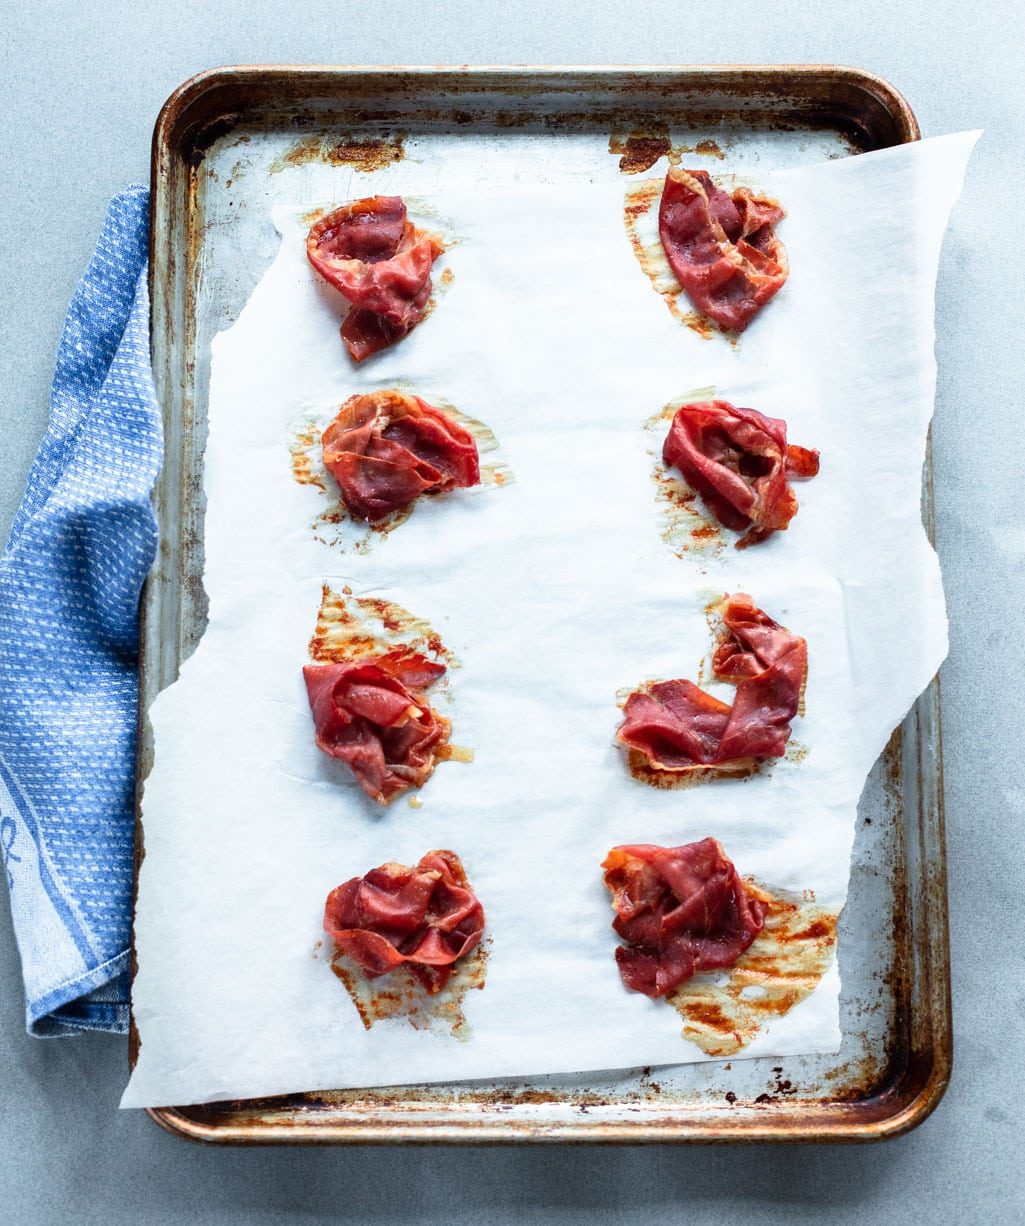 How to Make Prosciutto Crisps